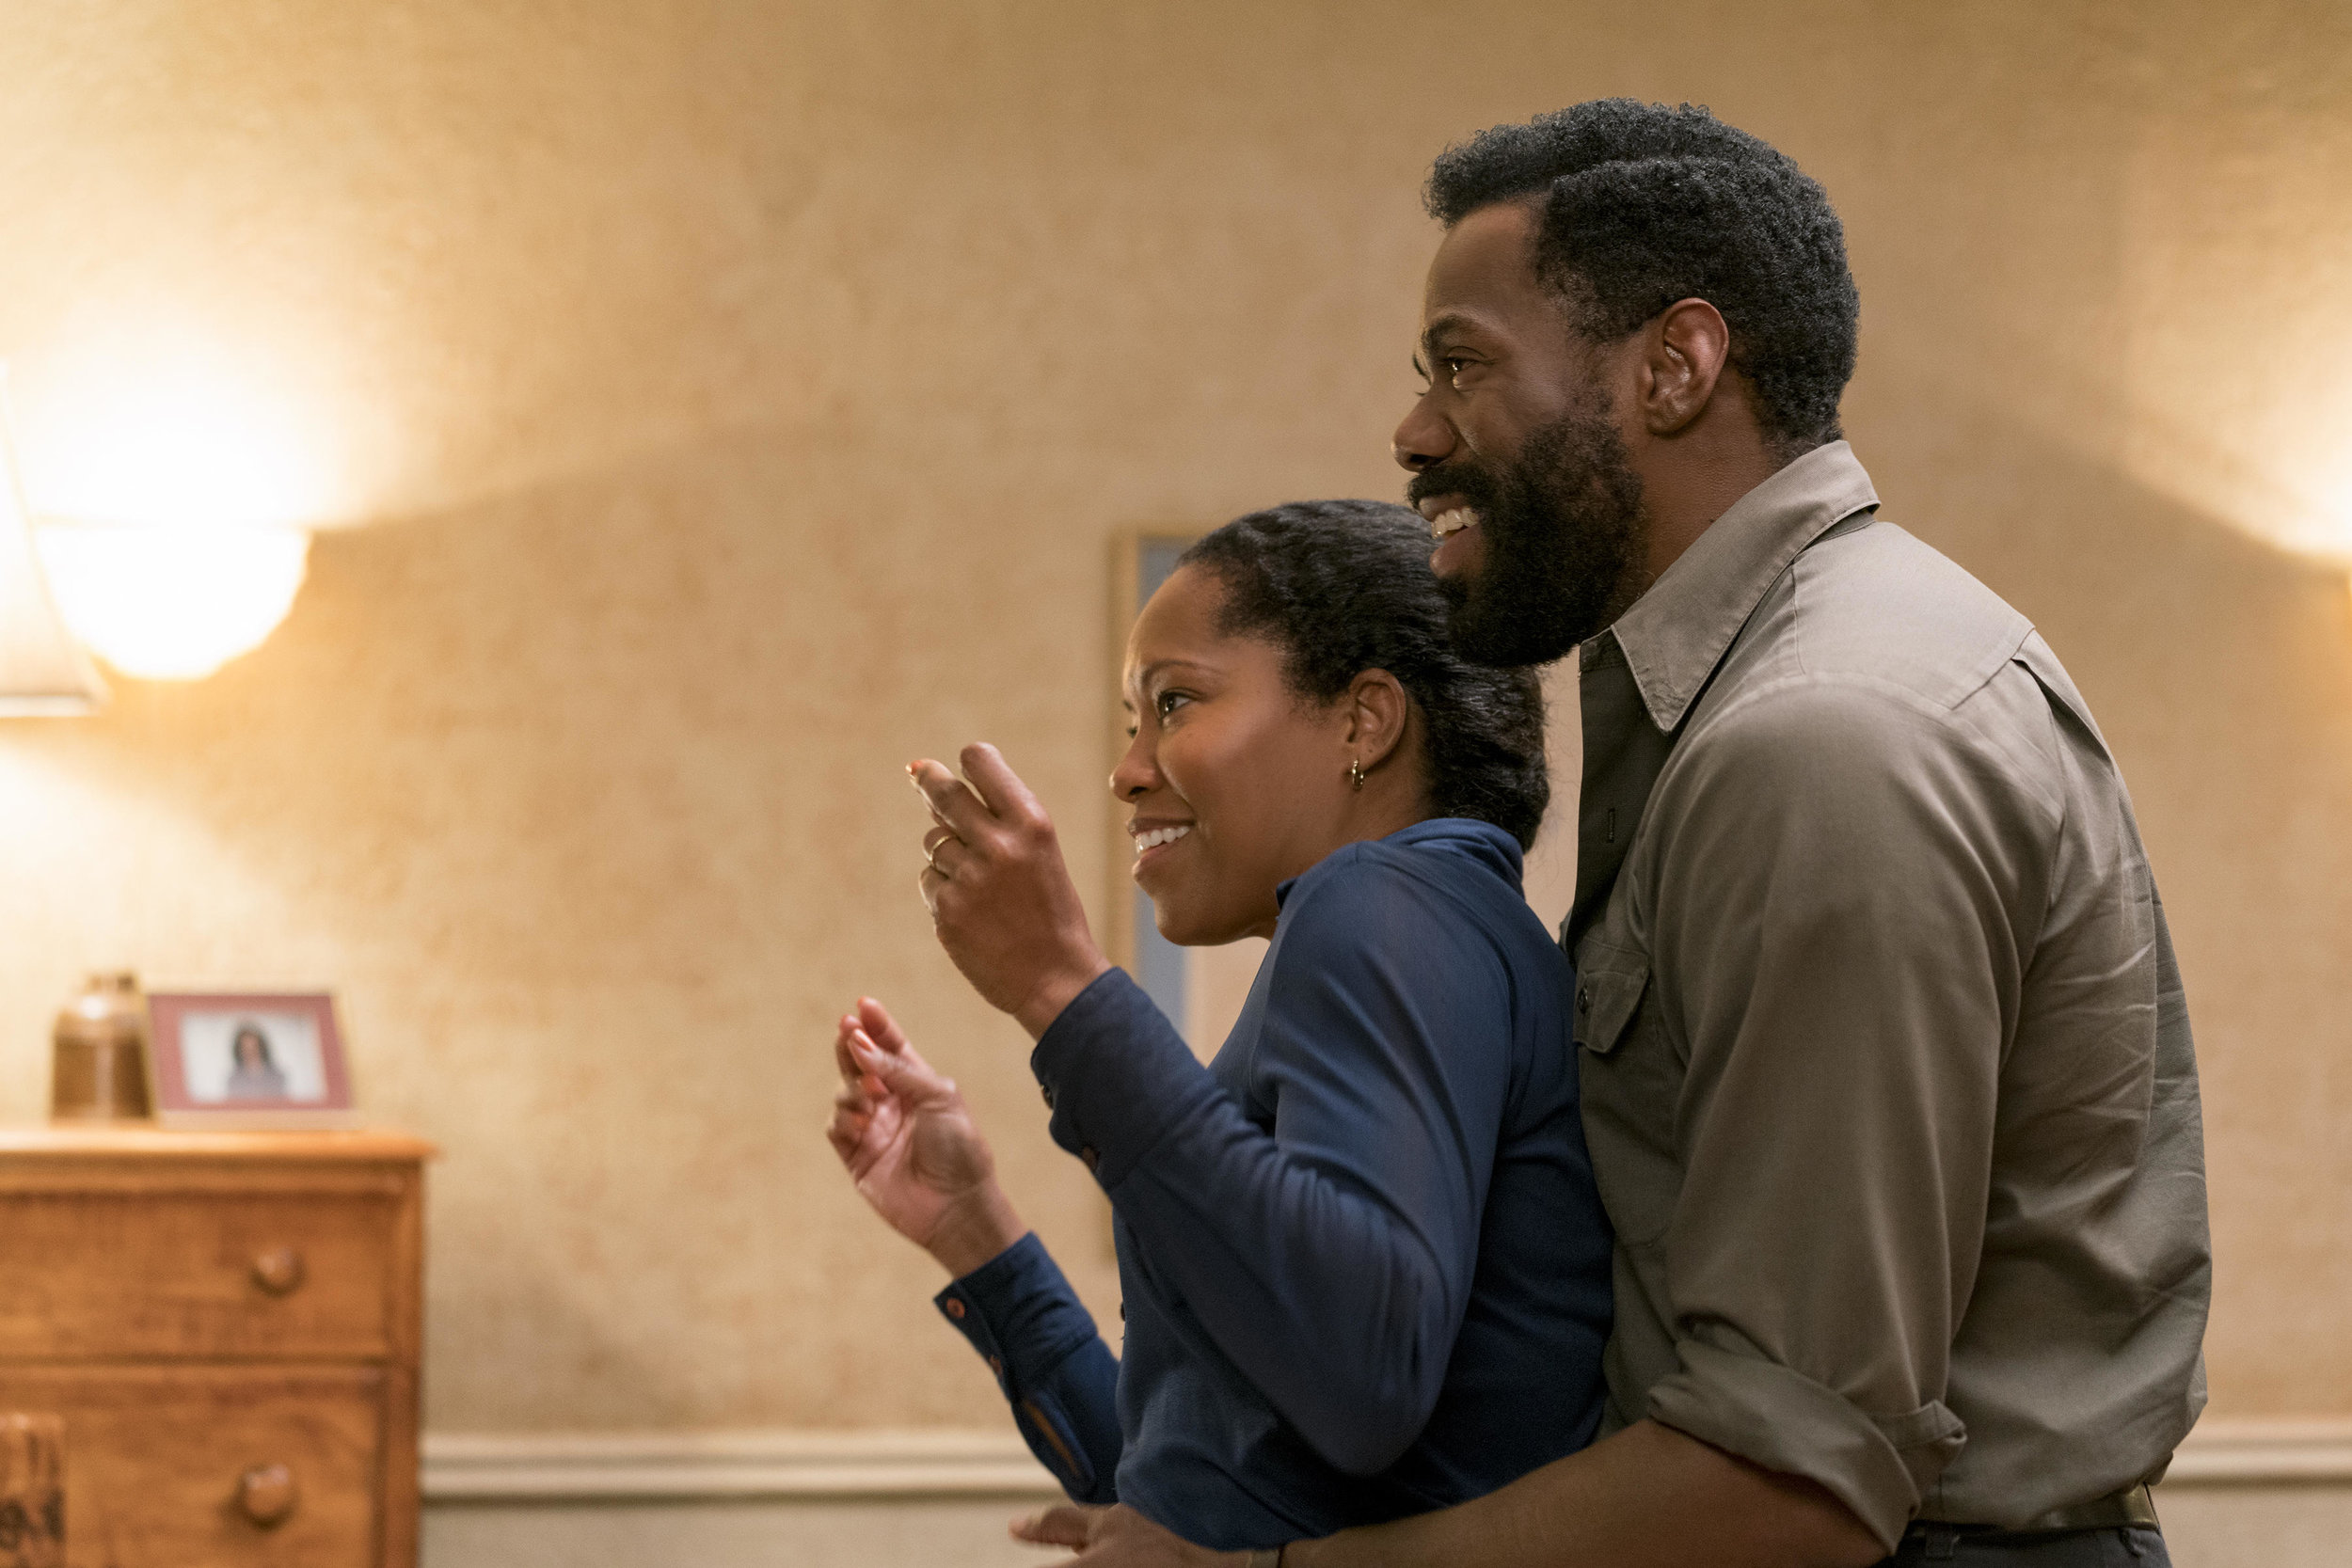 Regina King (mother) and Colman Domingo (father) in  If Beale Street Could Talk